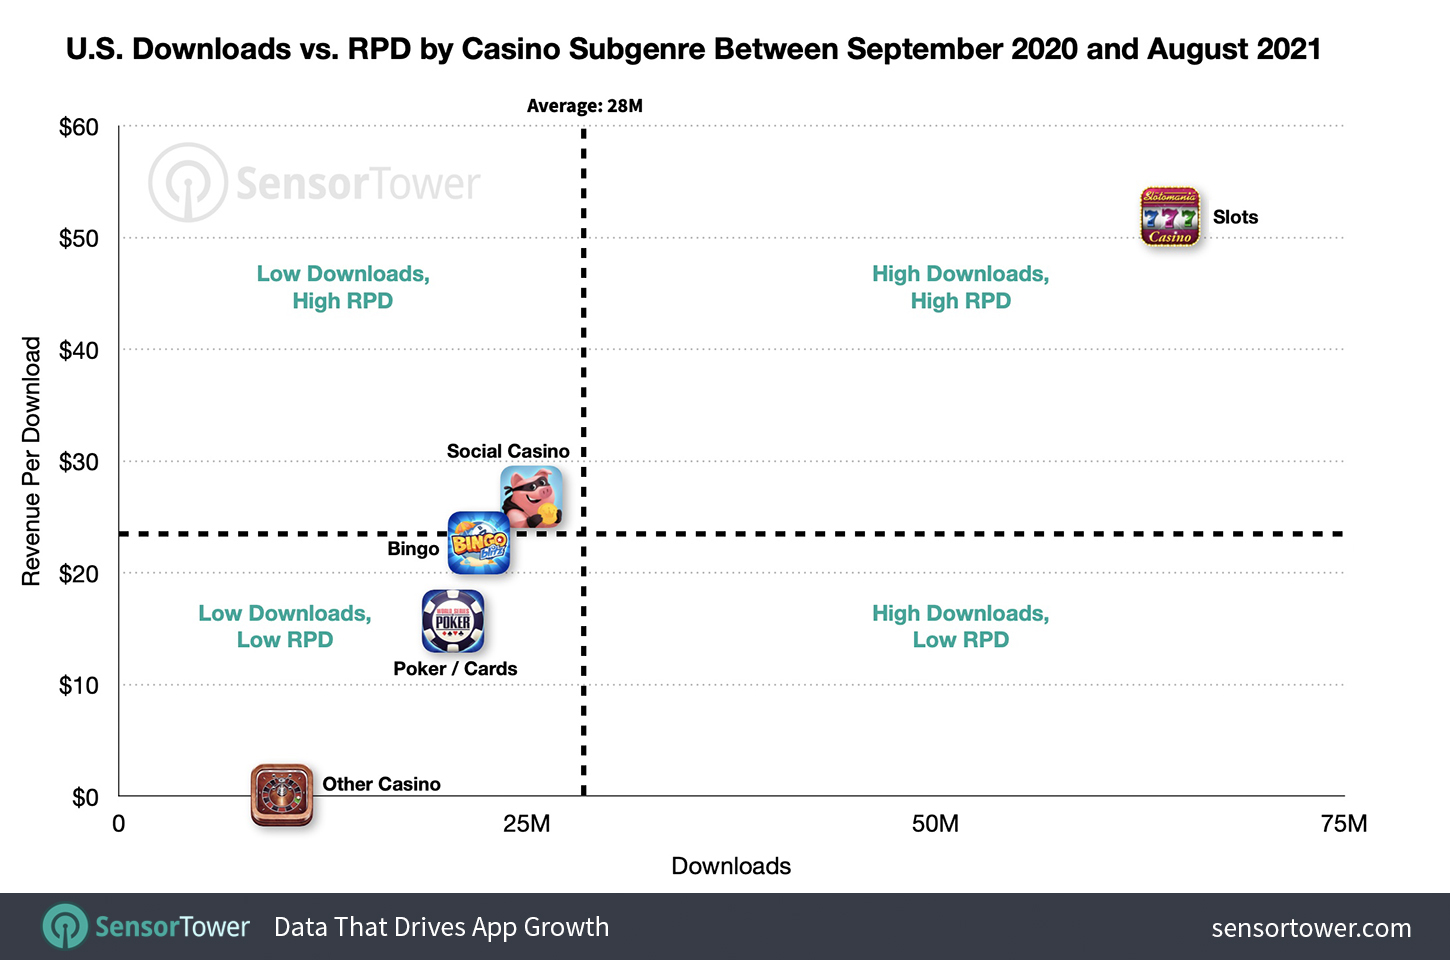 U.S. Downloads Vs. RPD by Casino Subgenre Between September 1, 2020 and August 31, 2021